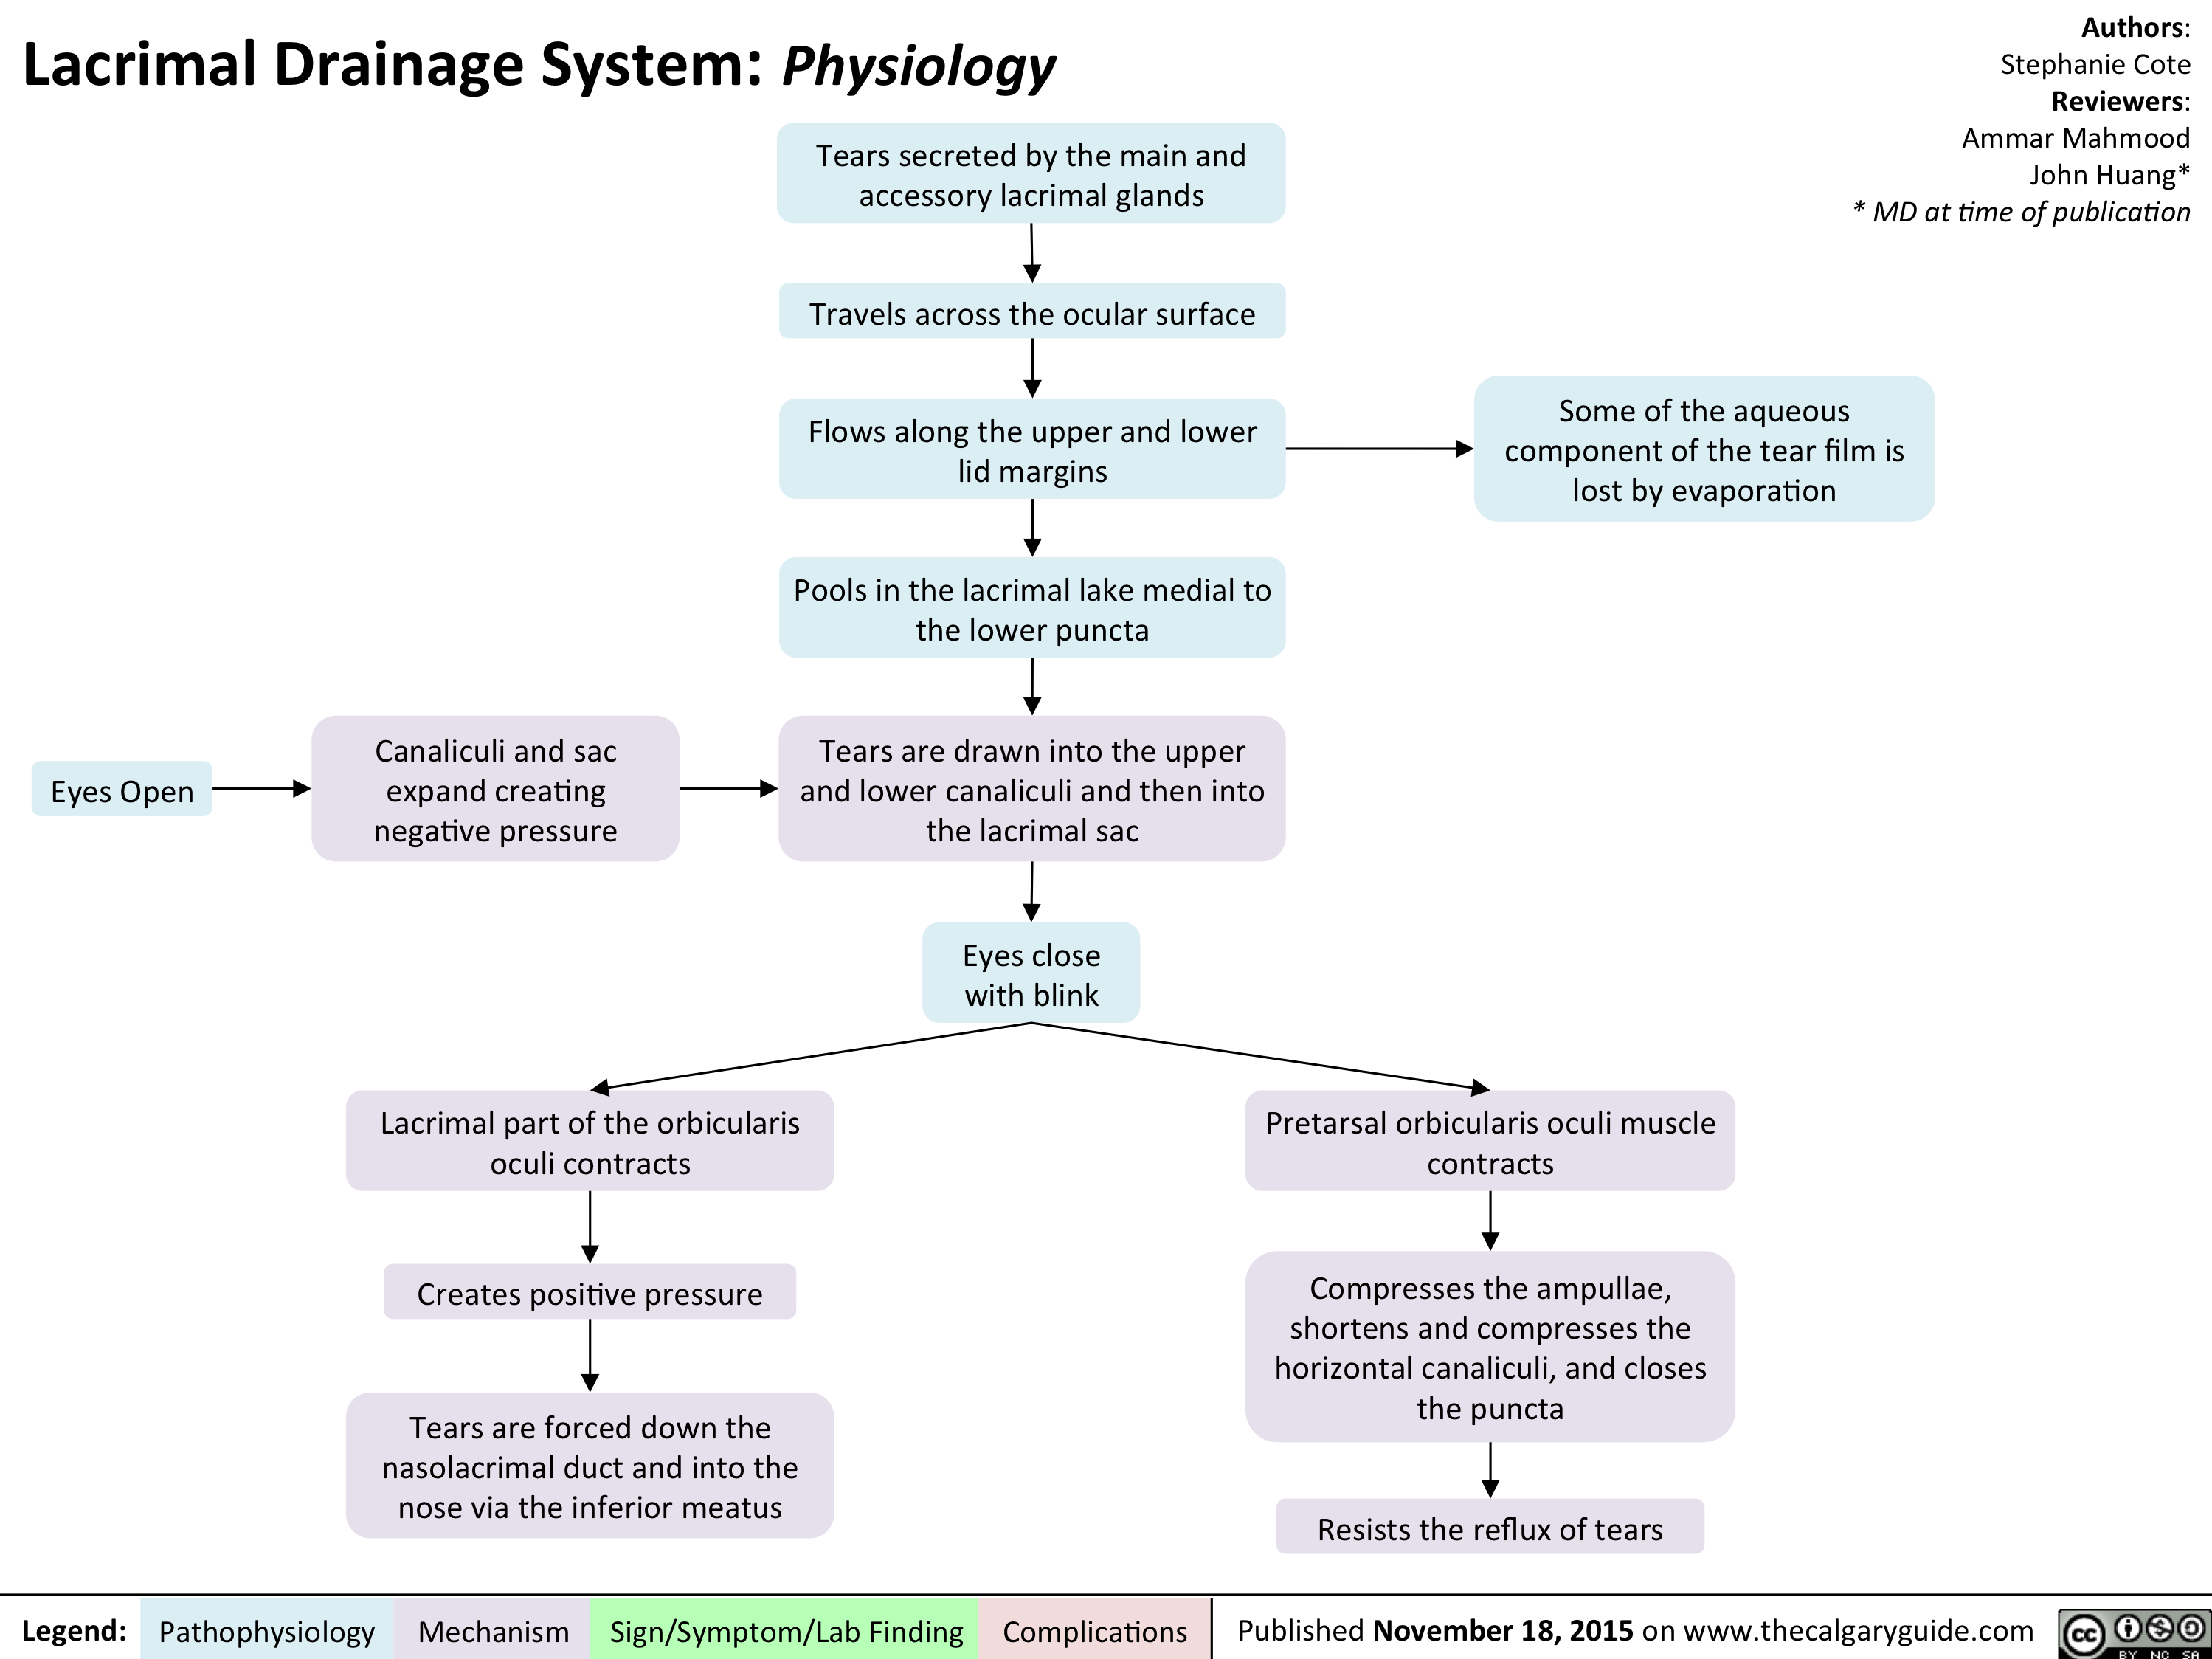 Lacrimal Drainage System - Physiology